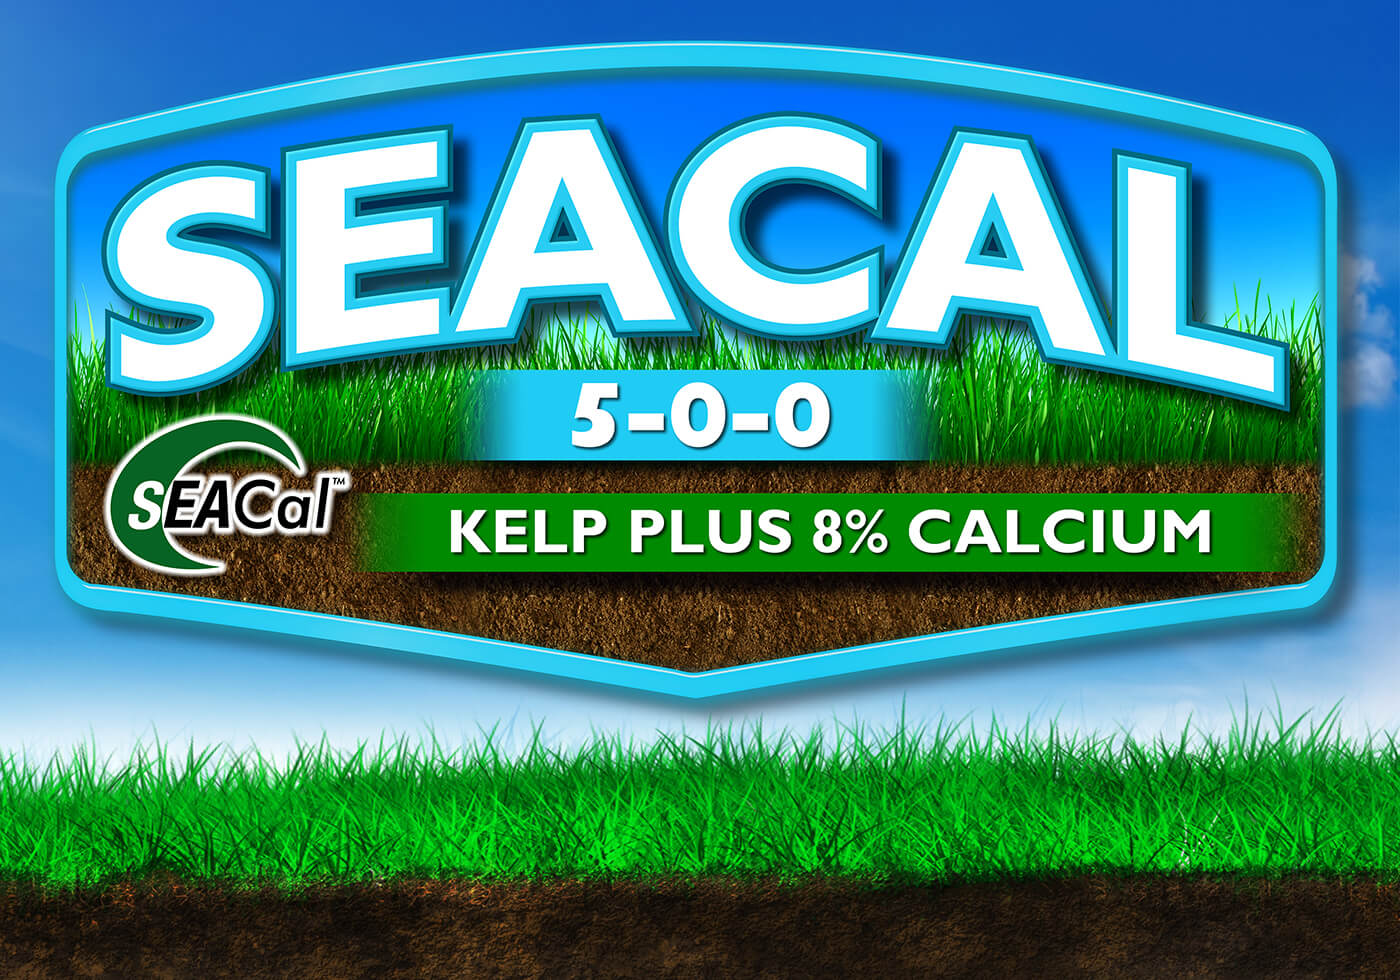 large light blue and white seacal 5-0-0 logo kelp plus 8 percent calcium over blue sky background grass and dirt